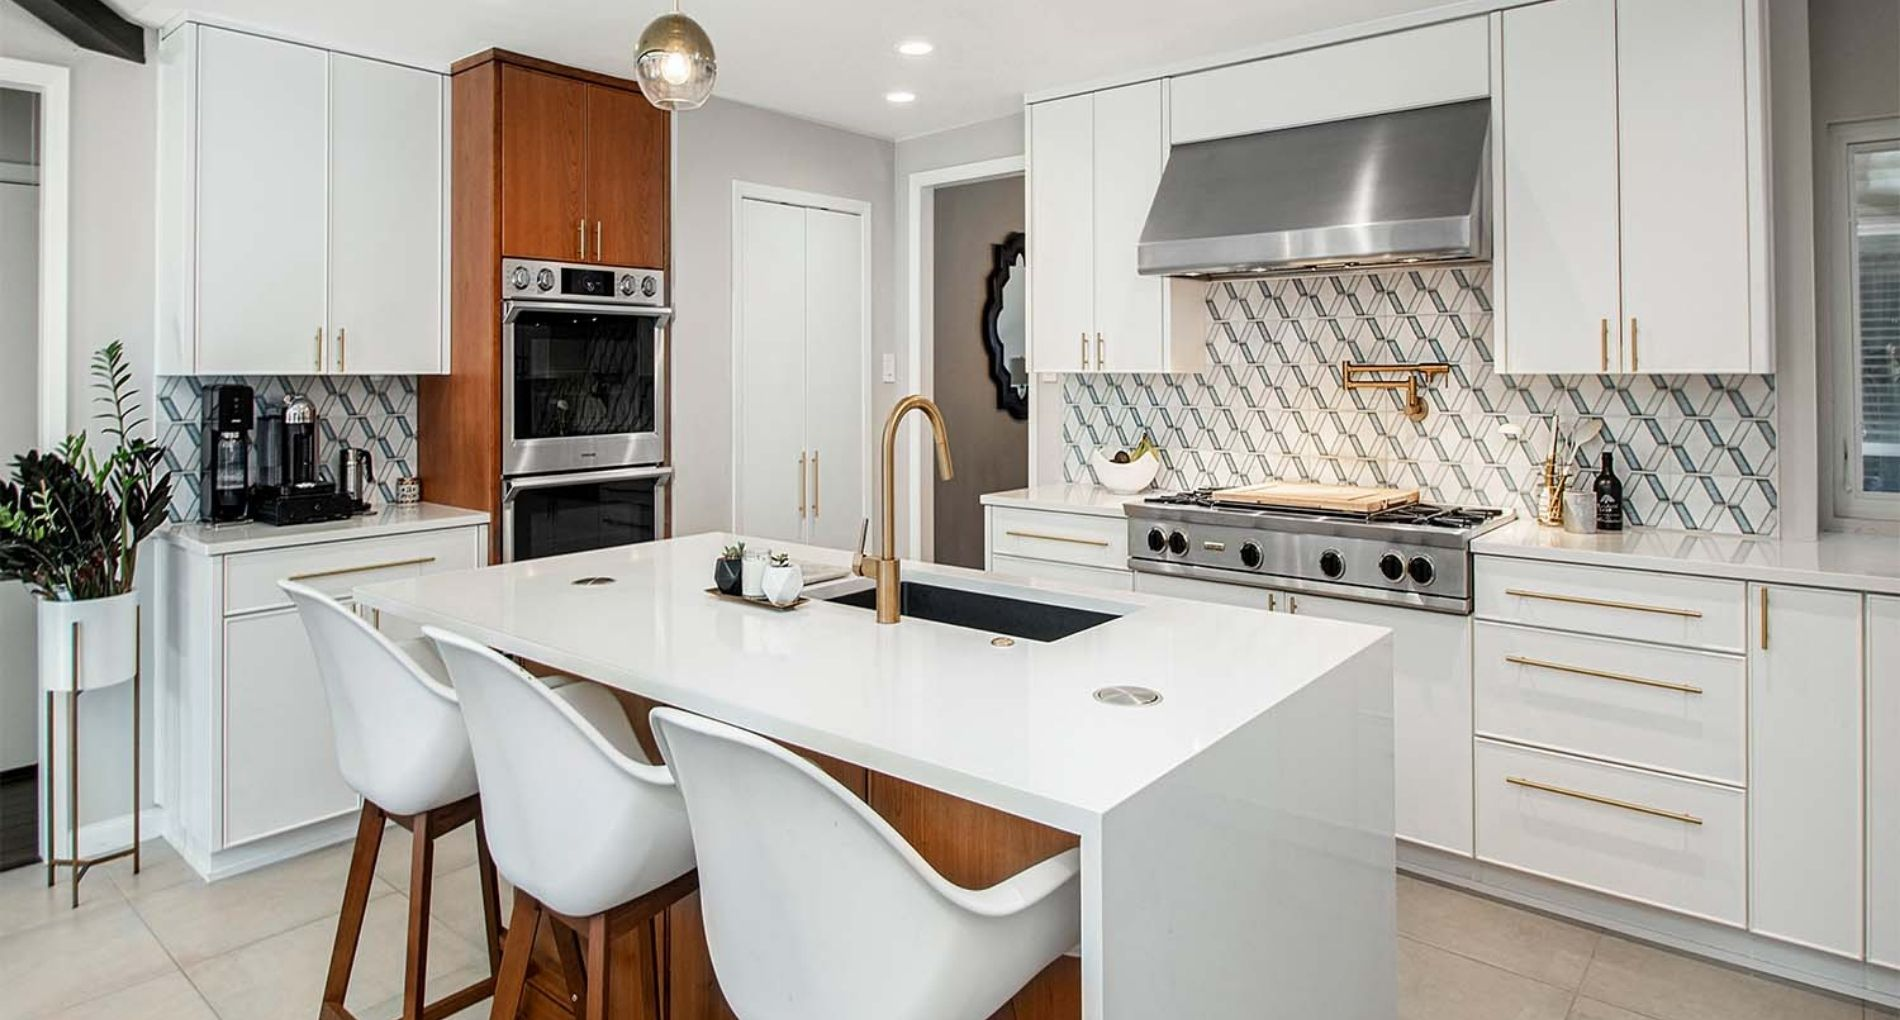 alair-homes-plano-kitchen-remodel-high-summit-feature-image